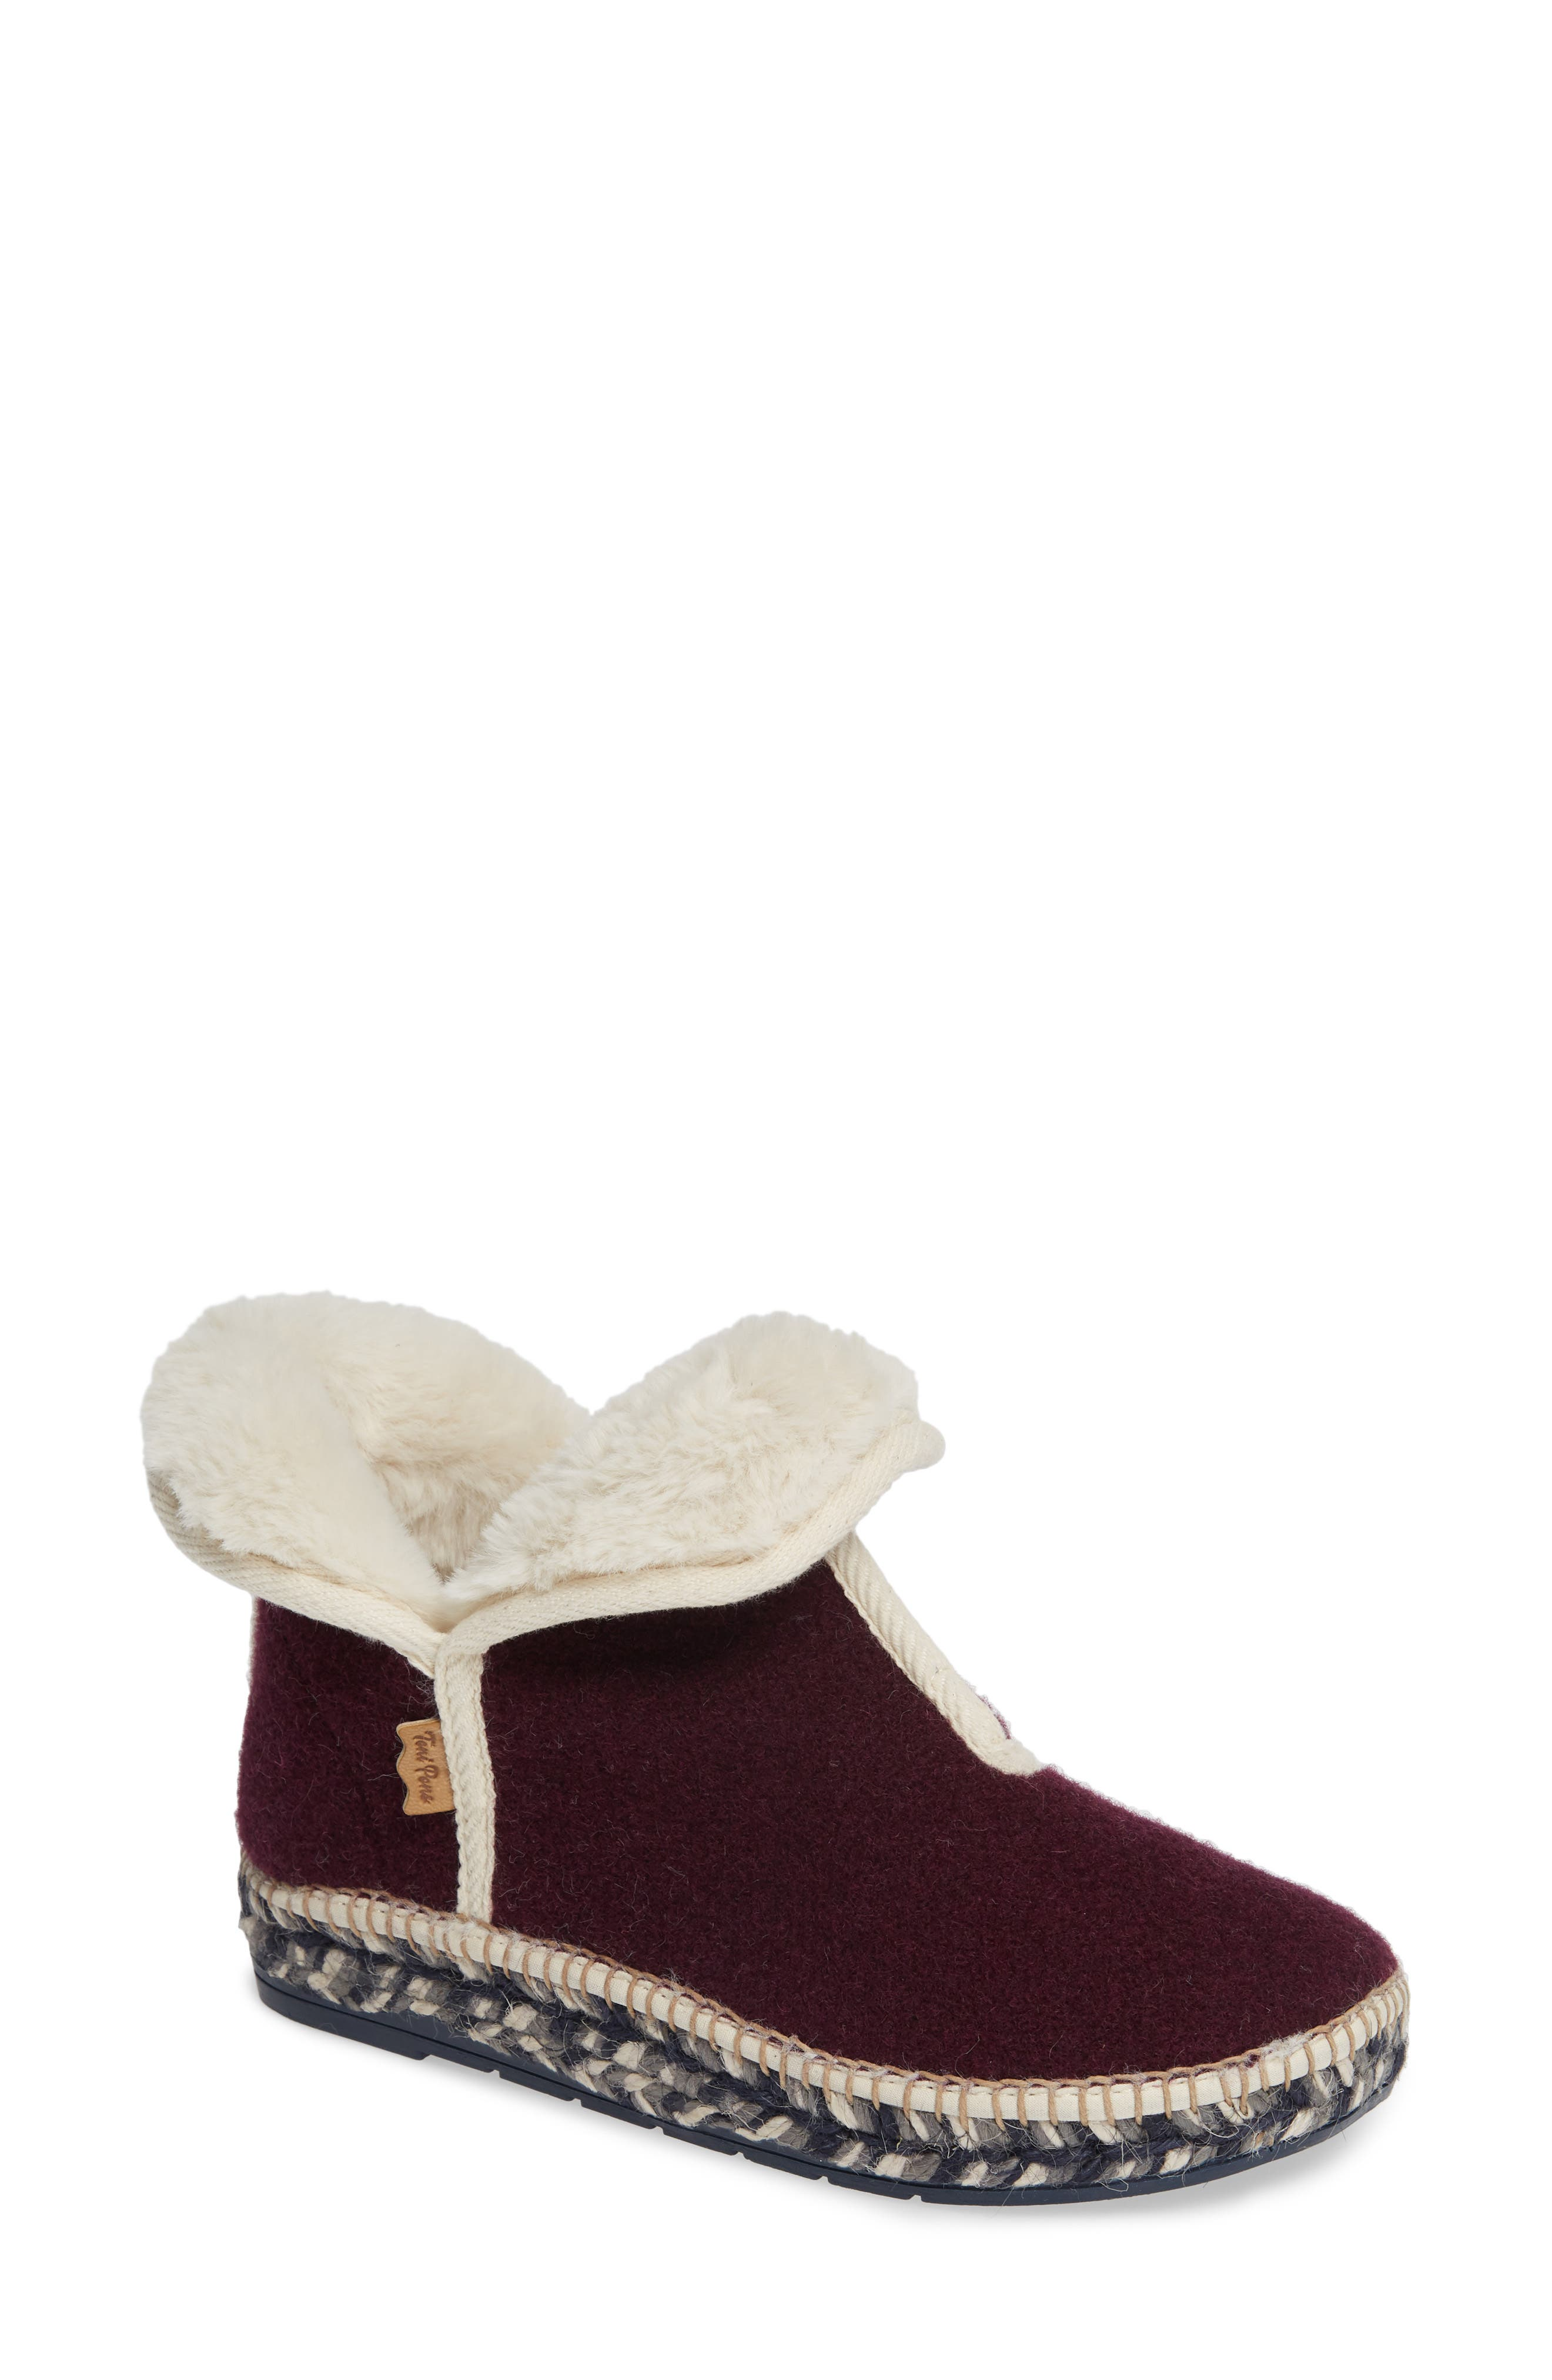 TONI PONS Espadrille Platform Bootie With Faux Fur Lining in Purple Fabric